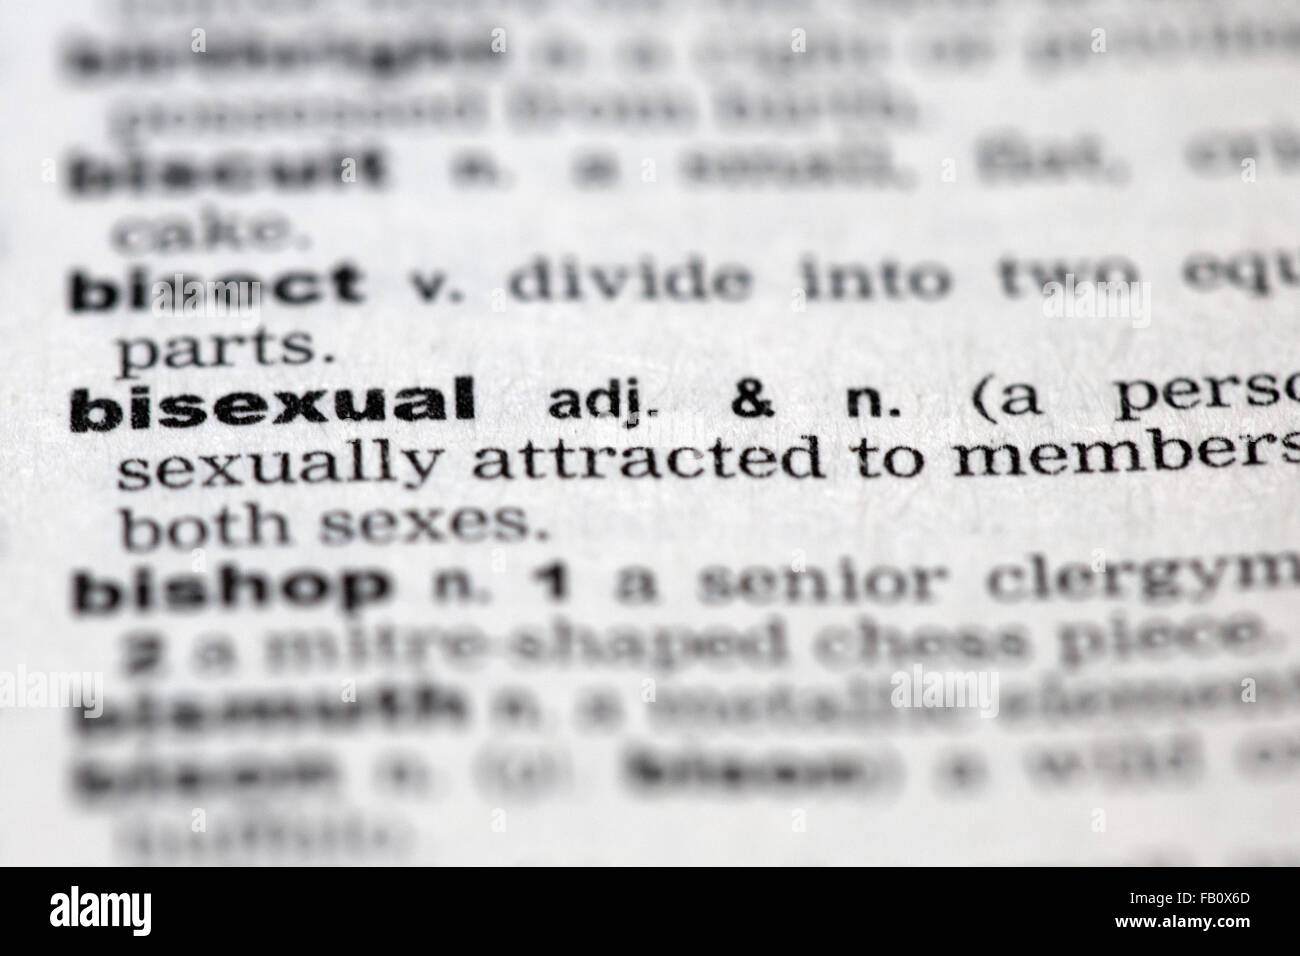 Dictionary details - Stock Image